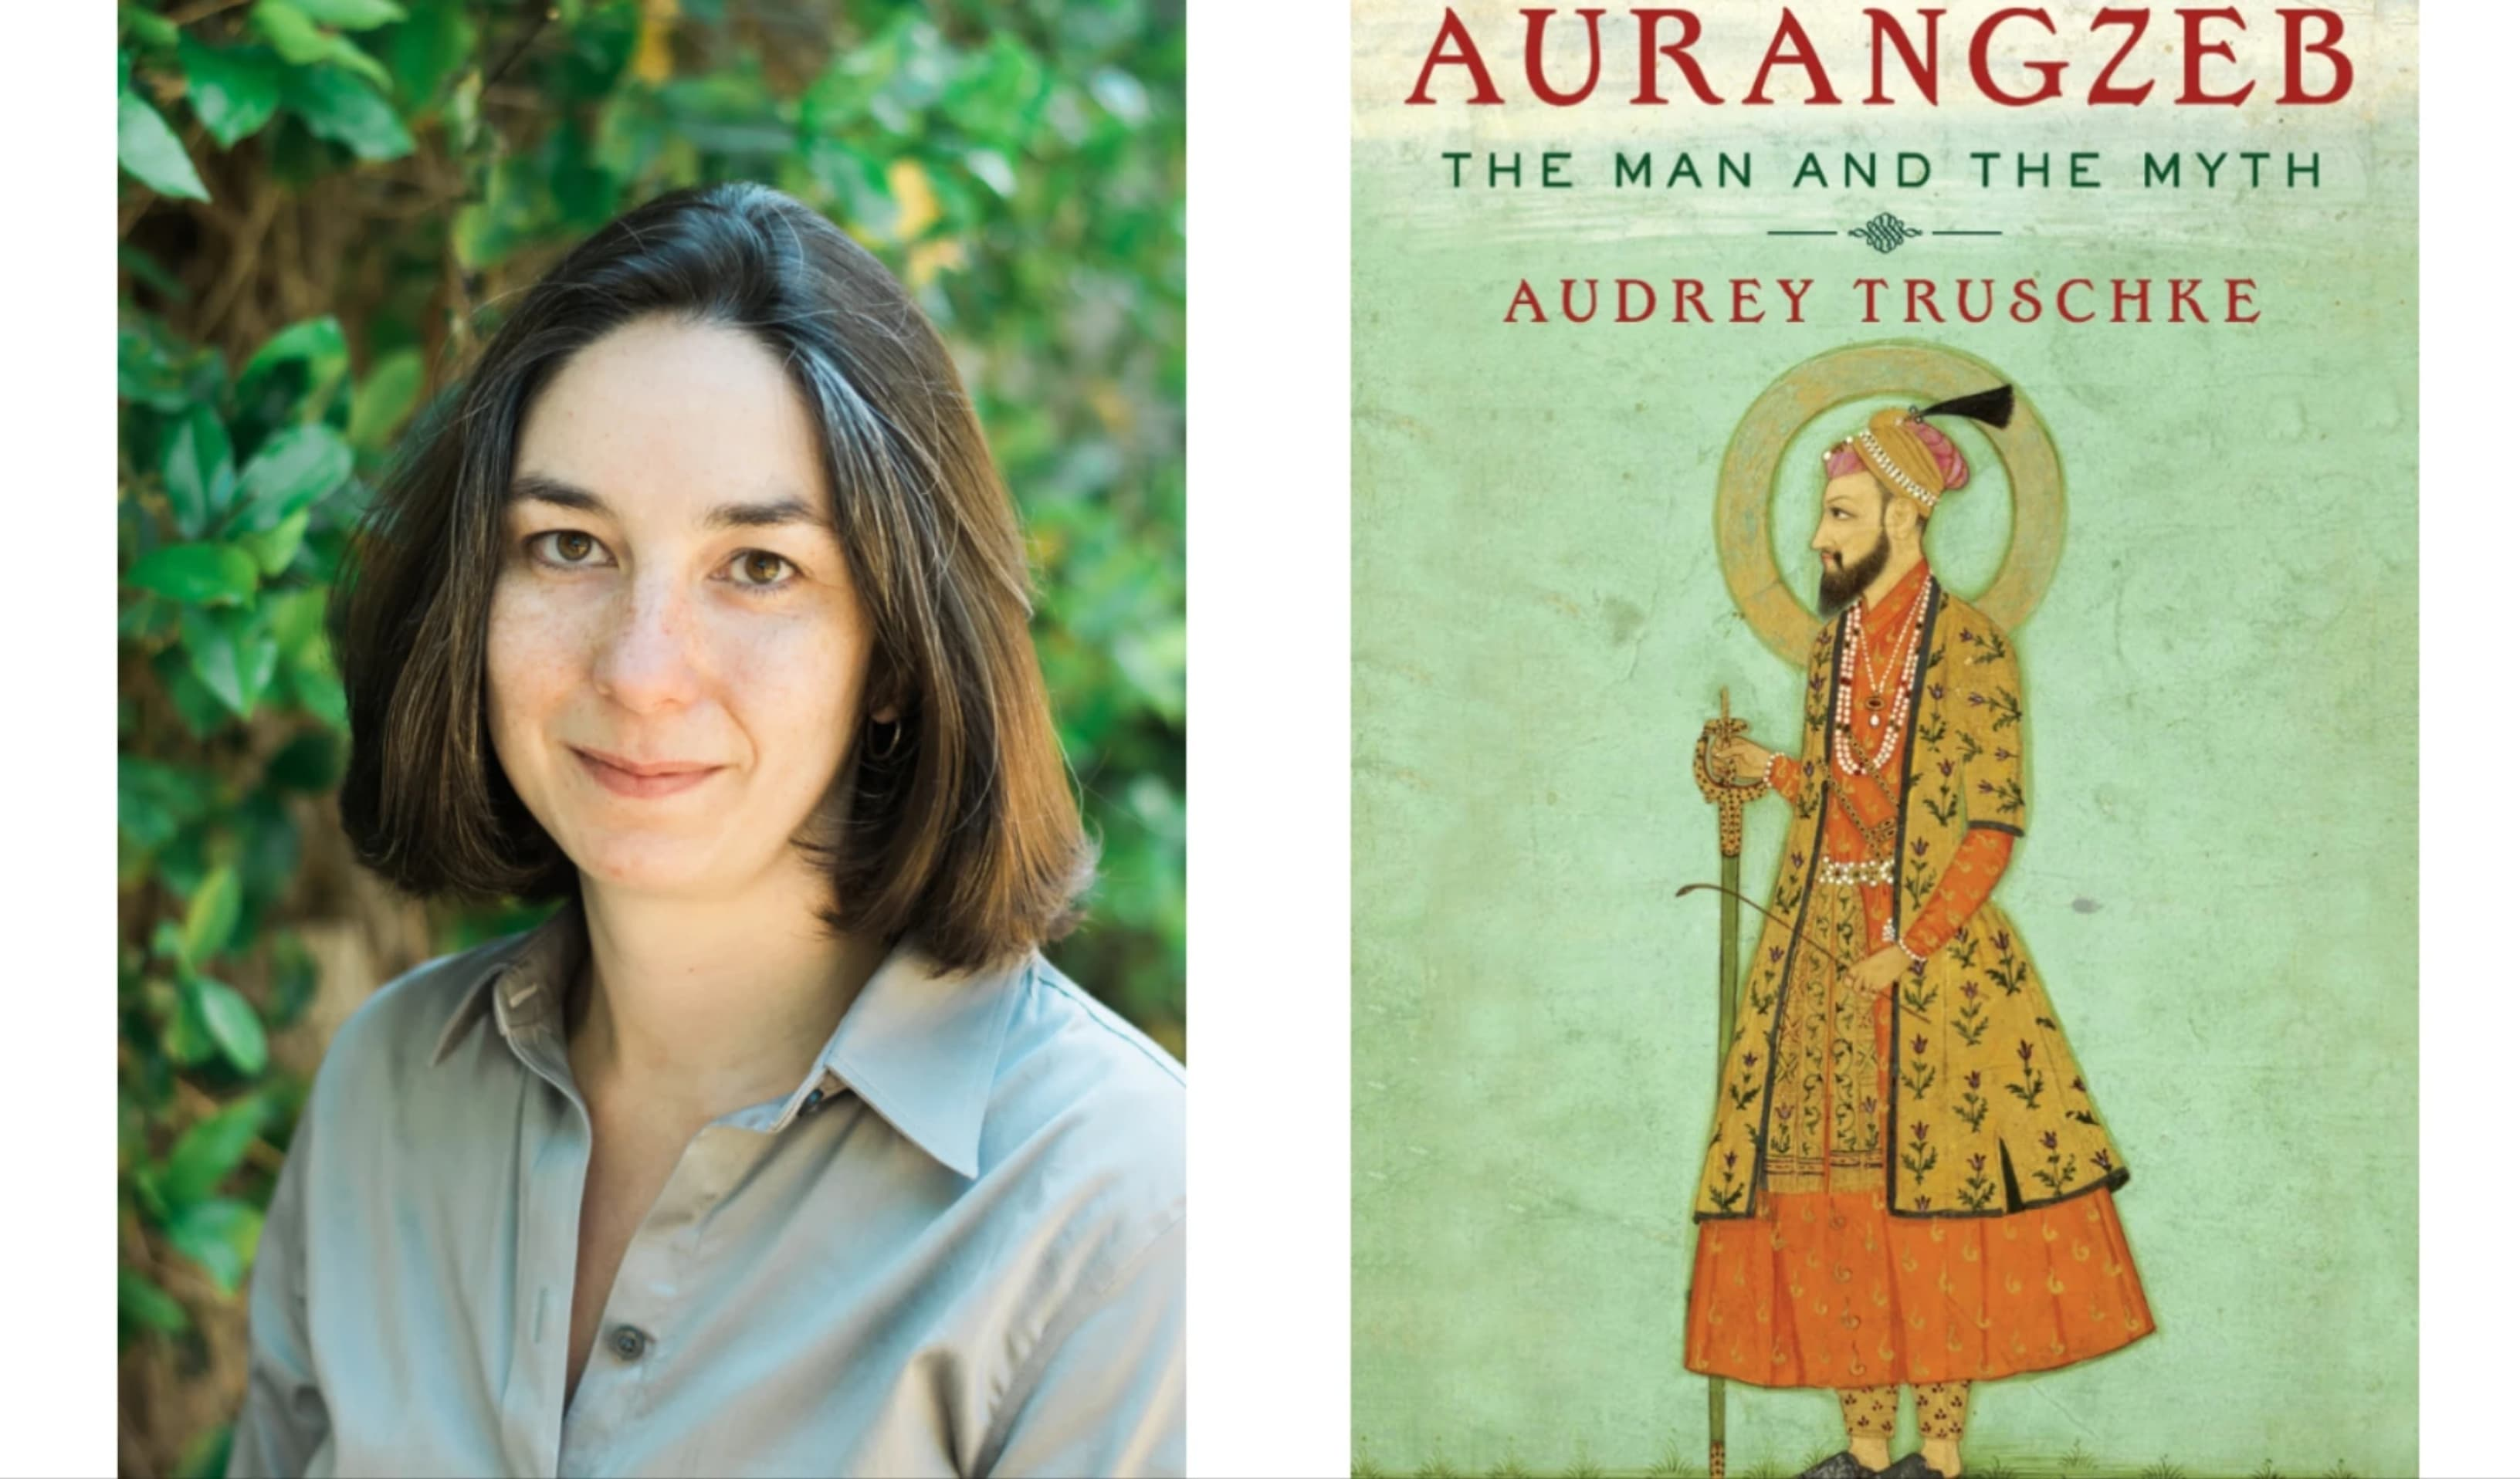 Truschke's book is a reassessment of the controversial king, Aurangzeb